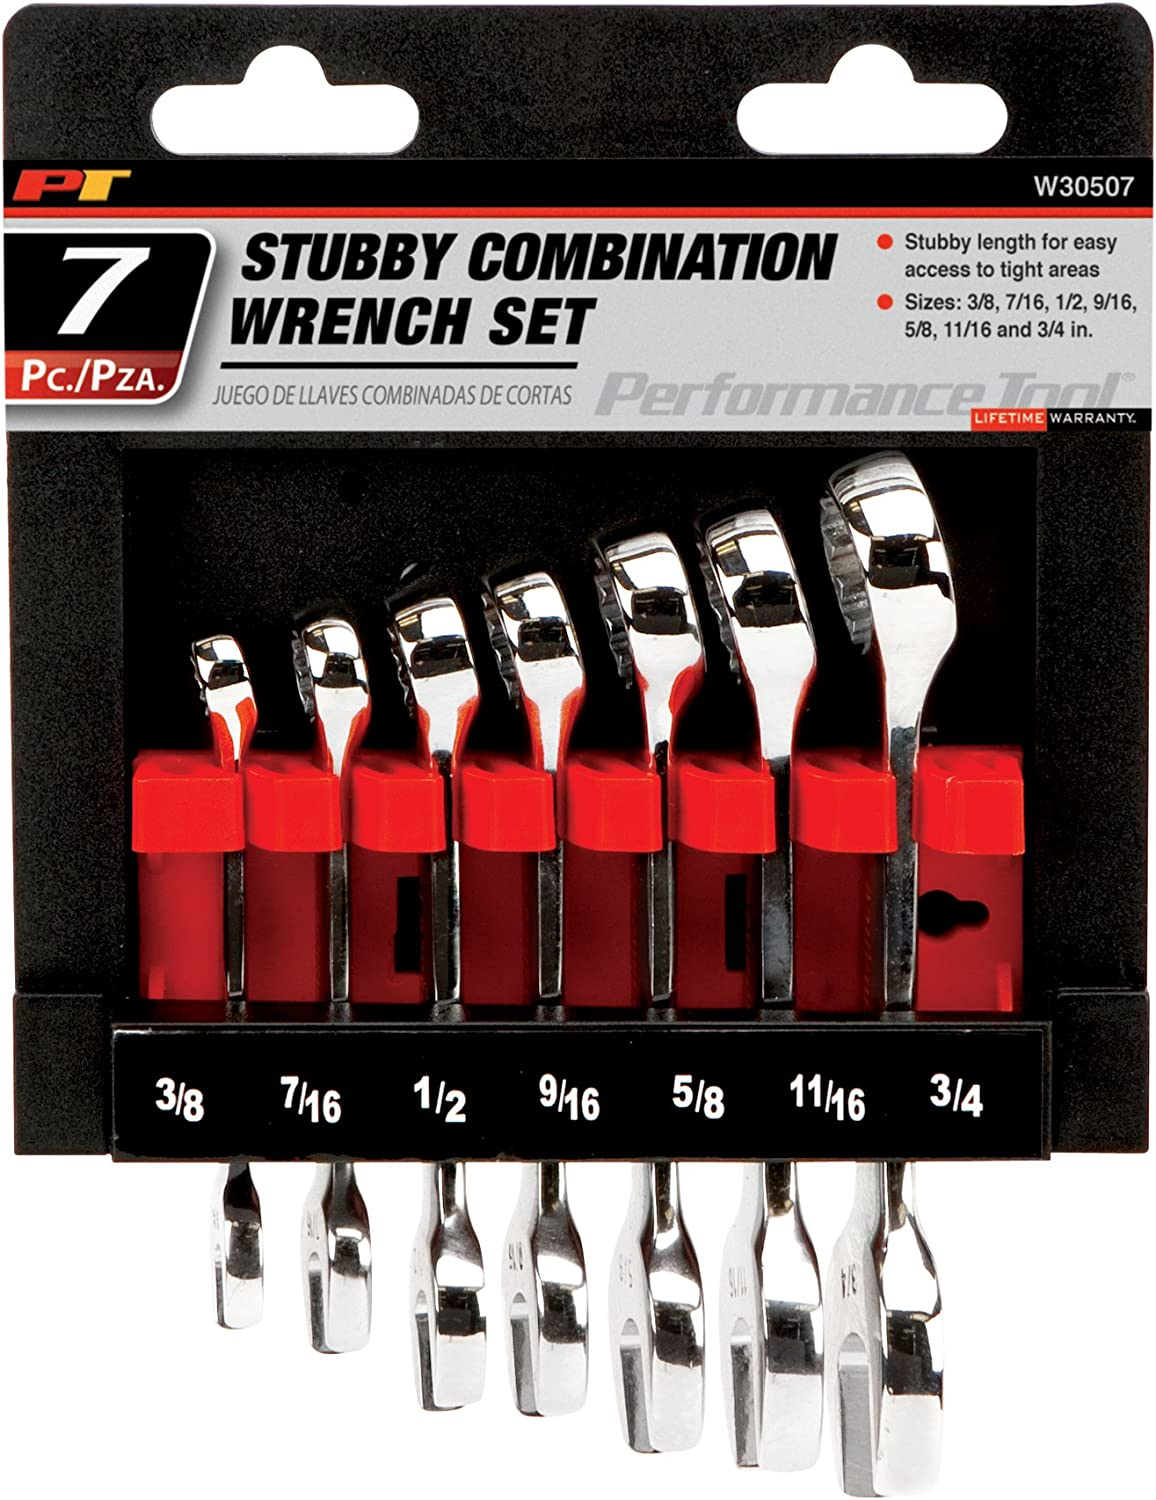 3//4 and 13//16 9//16 Sizes: 1//4 7//16 3//8 5//8 11//16 1//2 5//16 Performance Tool W30202 10pc SAE Standard Wrench Set